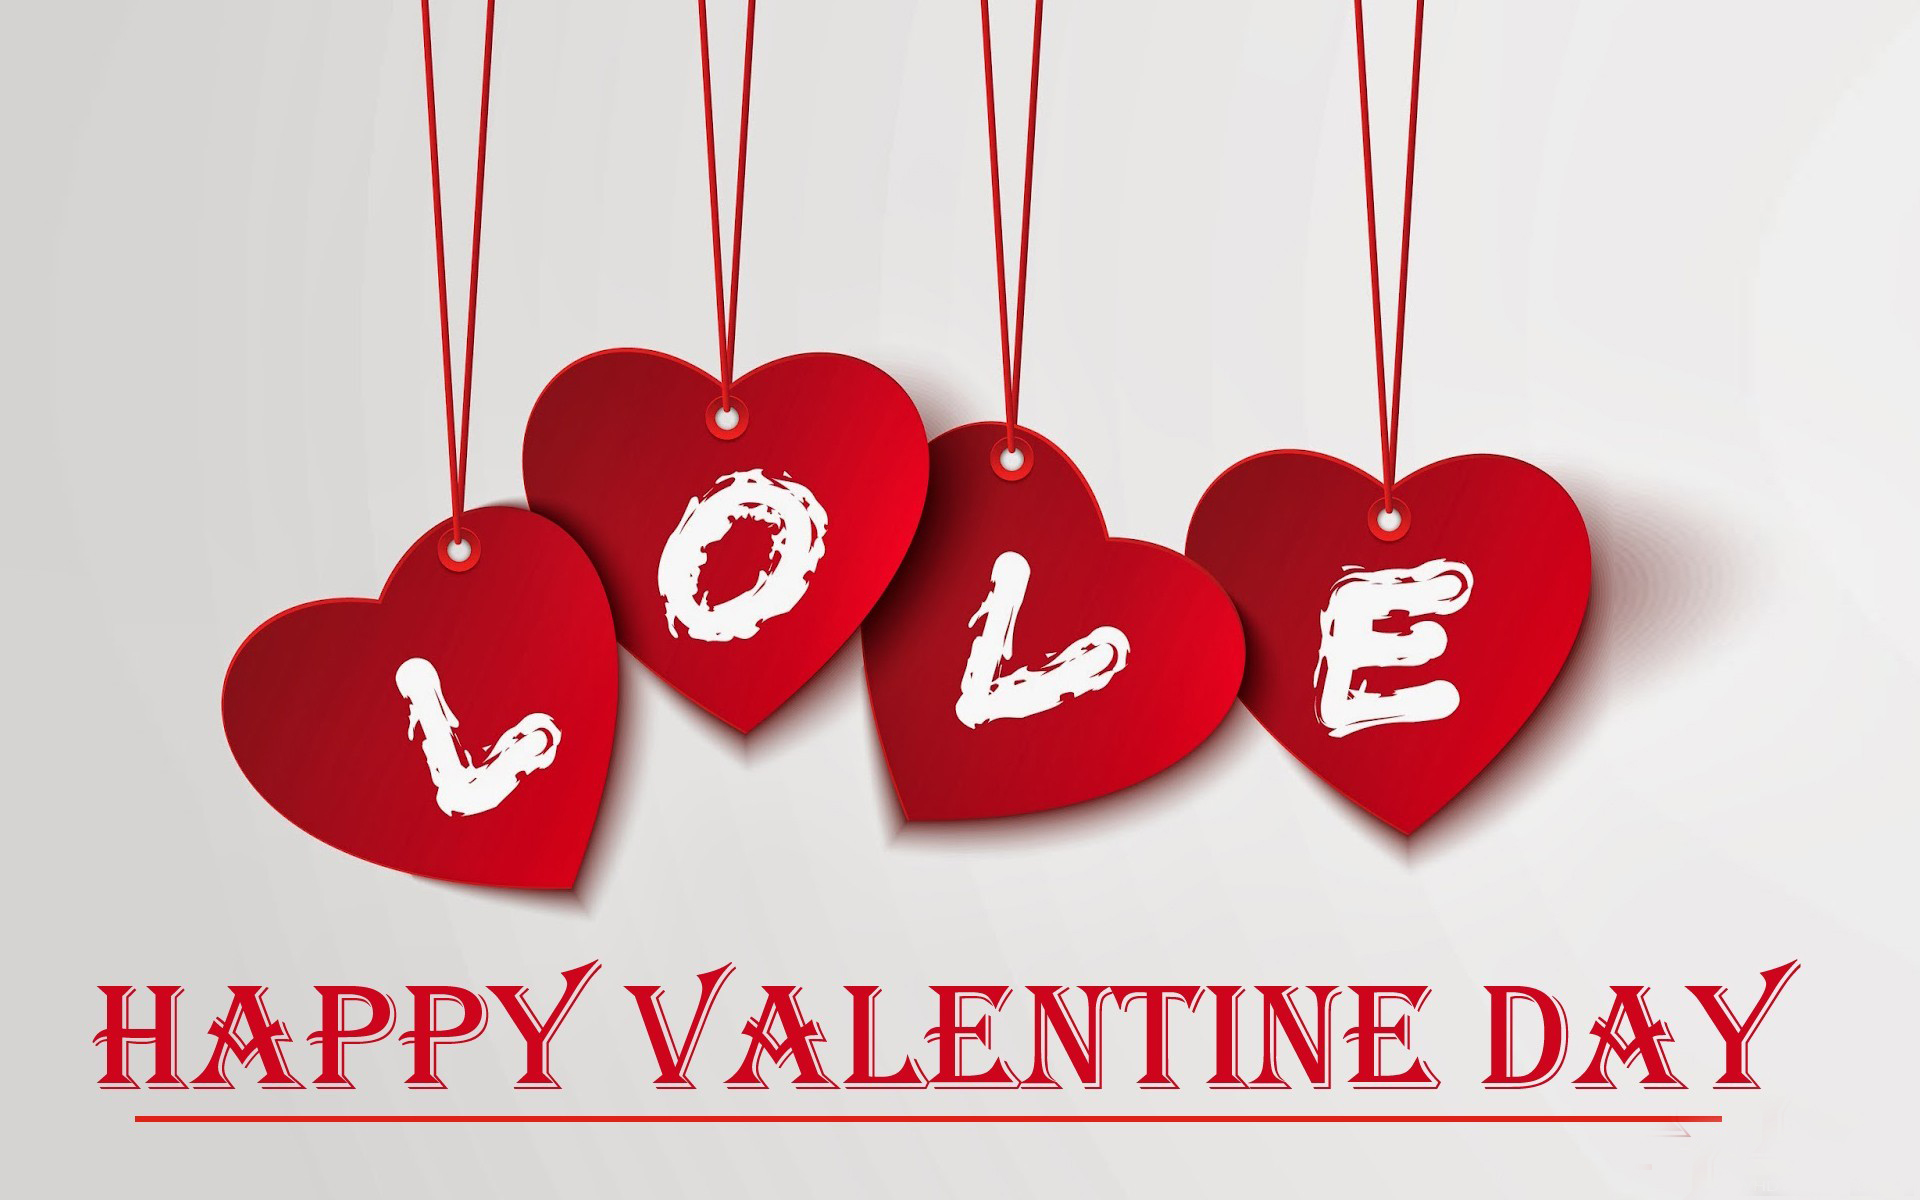 2018 happy valentines day whatsapp status facebook messages 2018 happy valentines day whatsapp status facebook messages love sms kristyandbryce Image collections